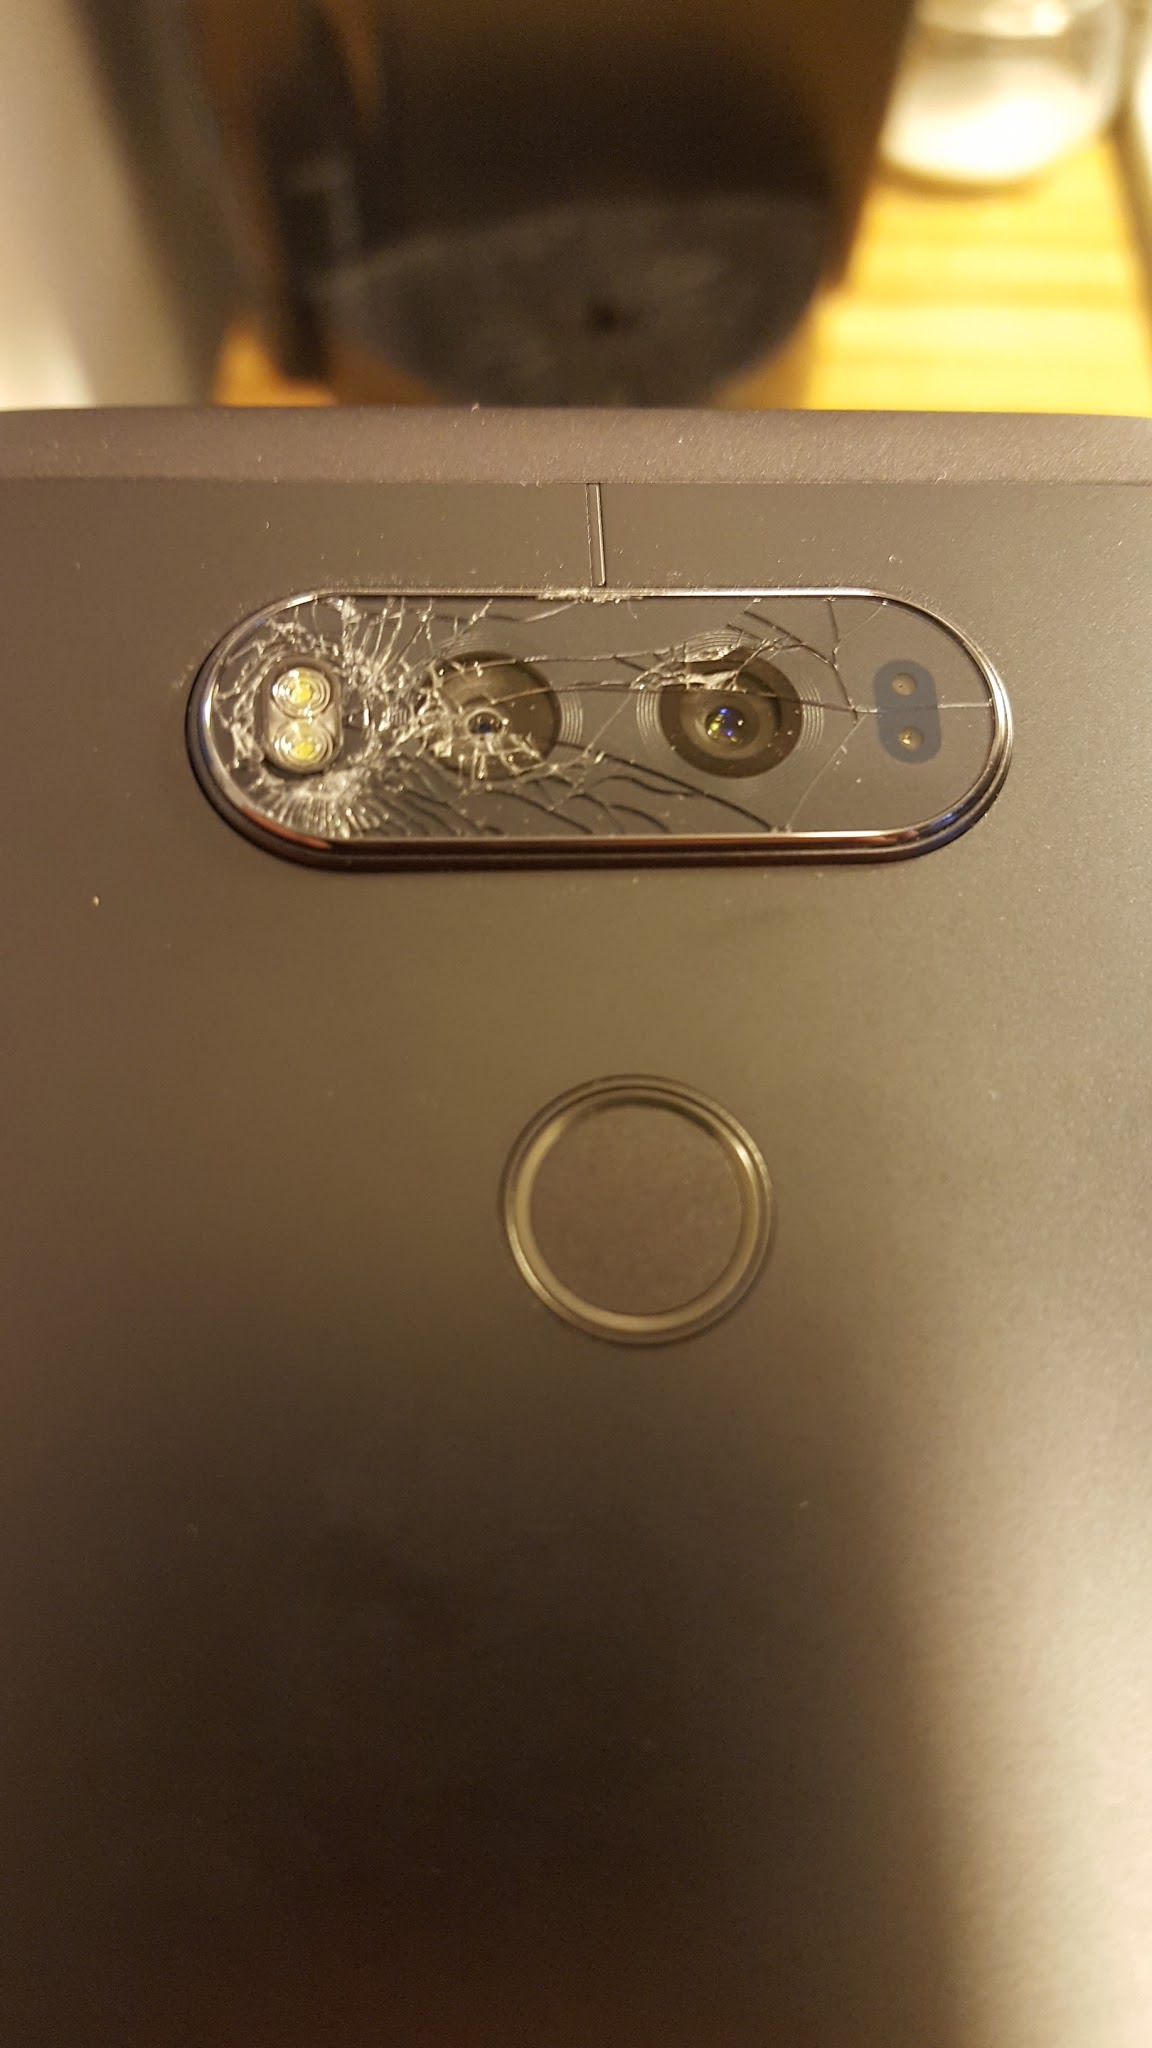 lg-v20-camera-glass-cracking-for-some-users-1